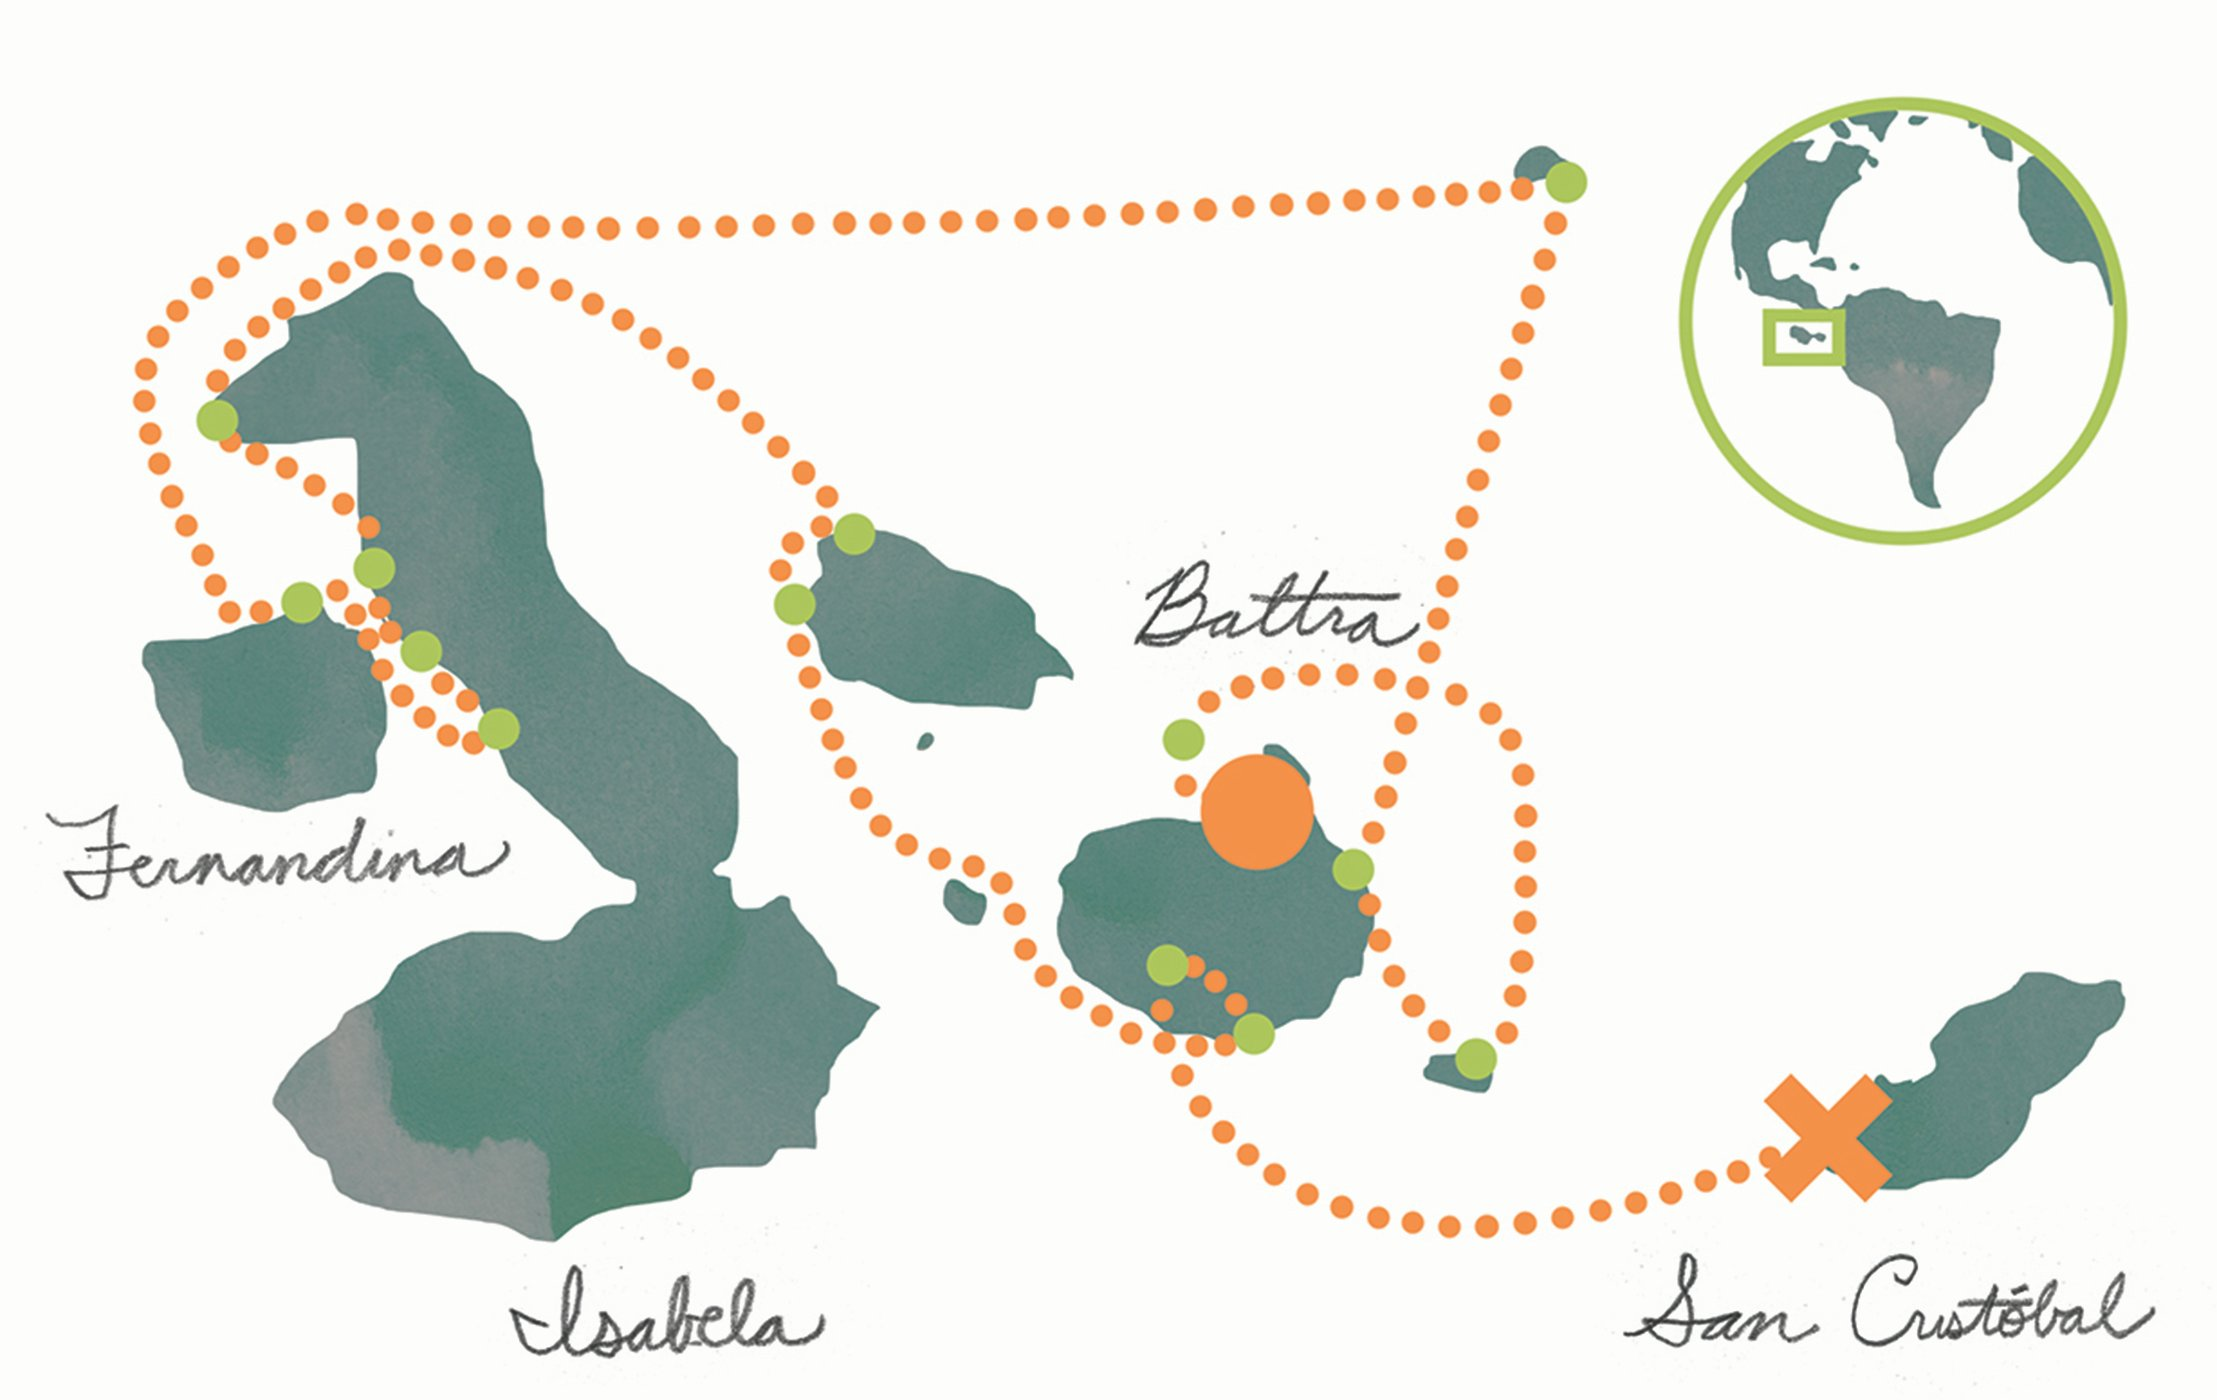 Cruise Map Galapagos Islands